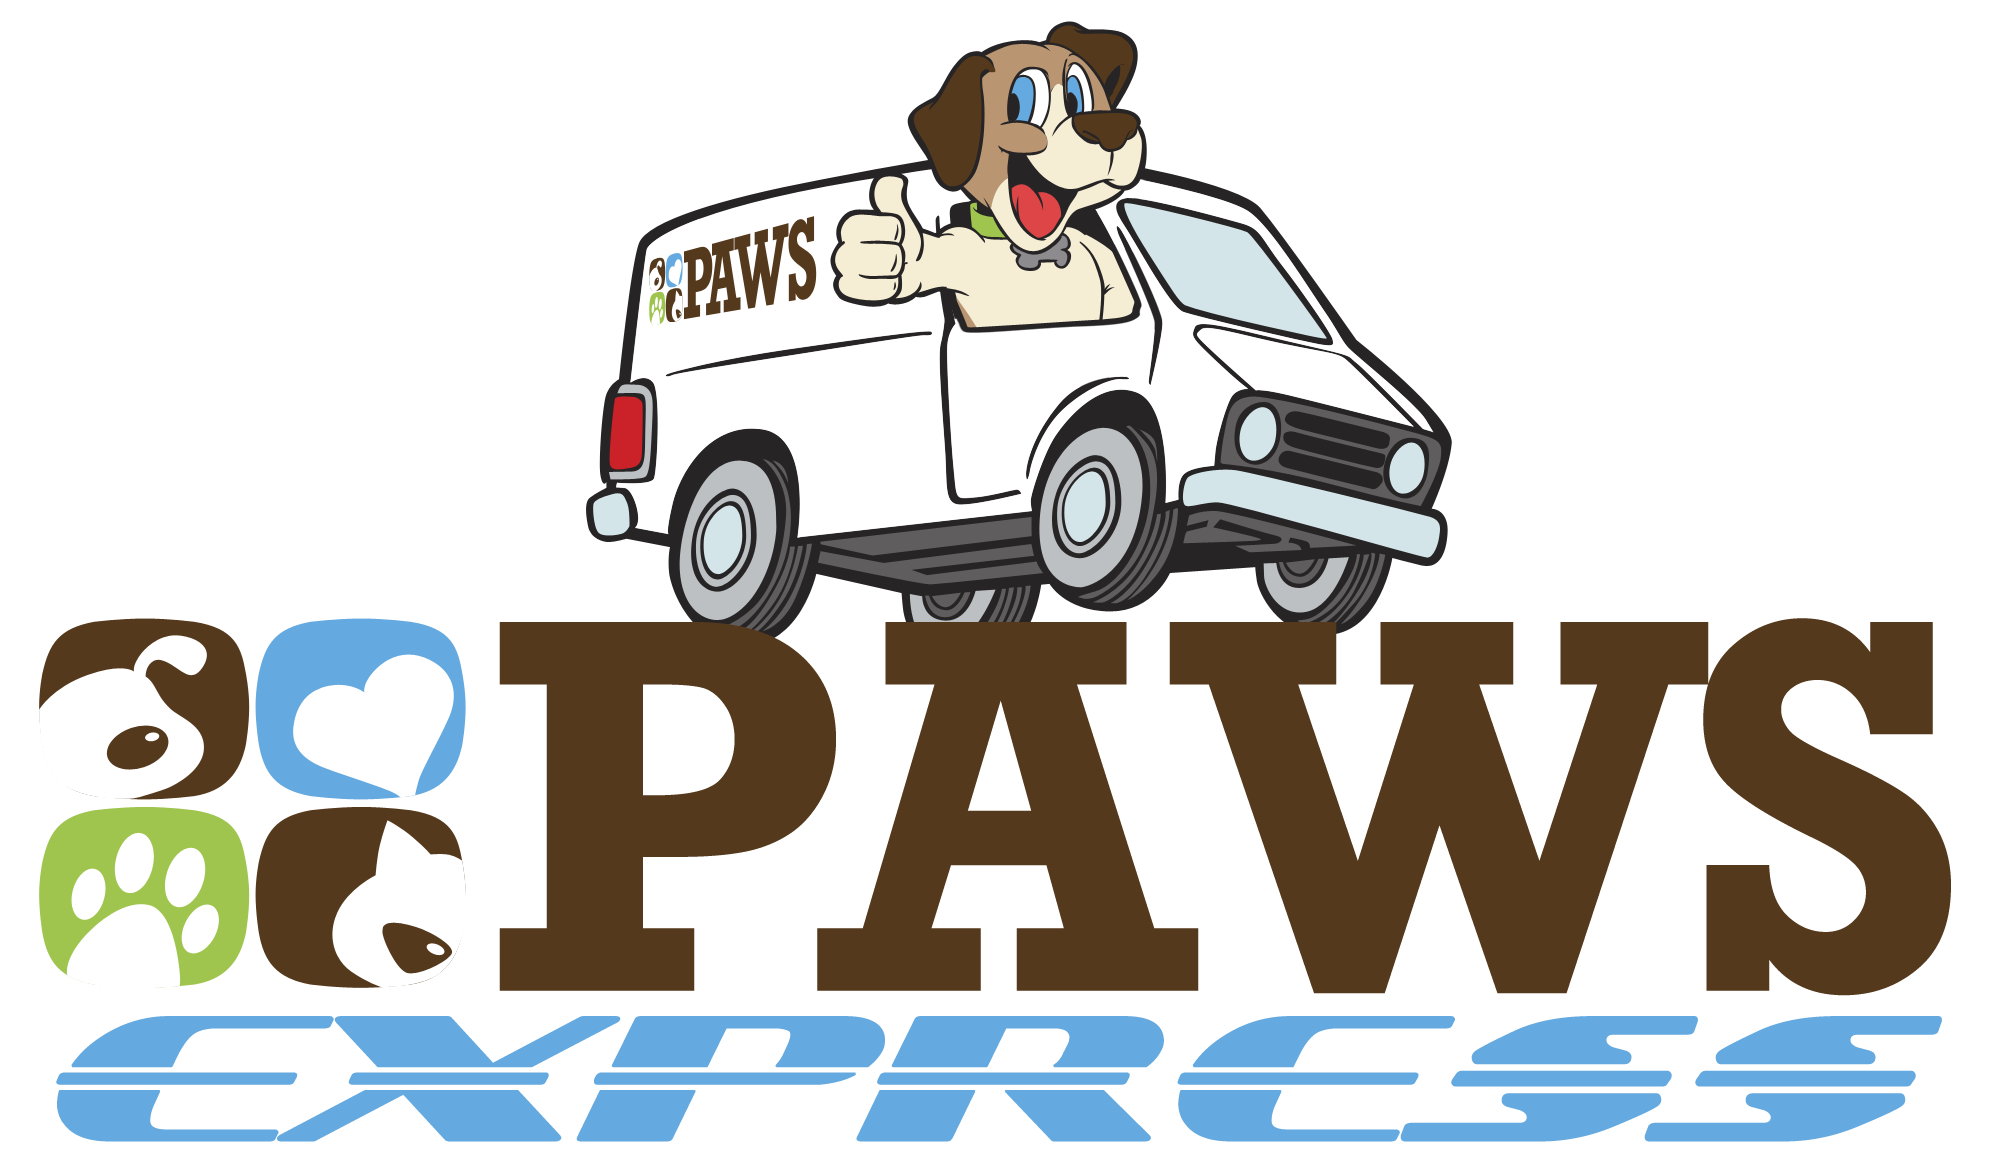 Minivan clipart dog. Help transport dogs from